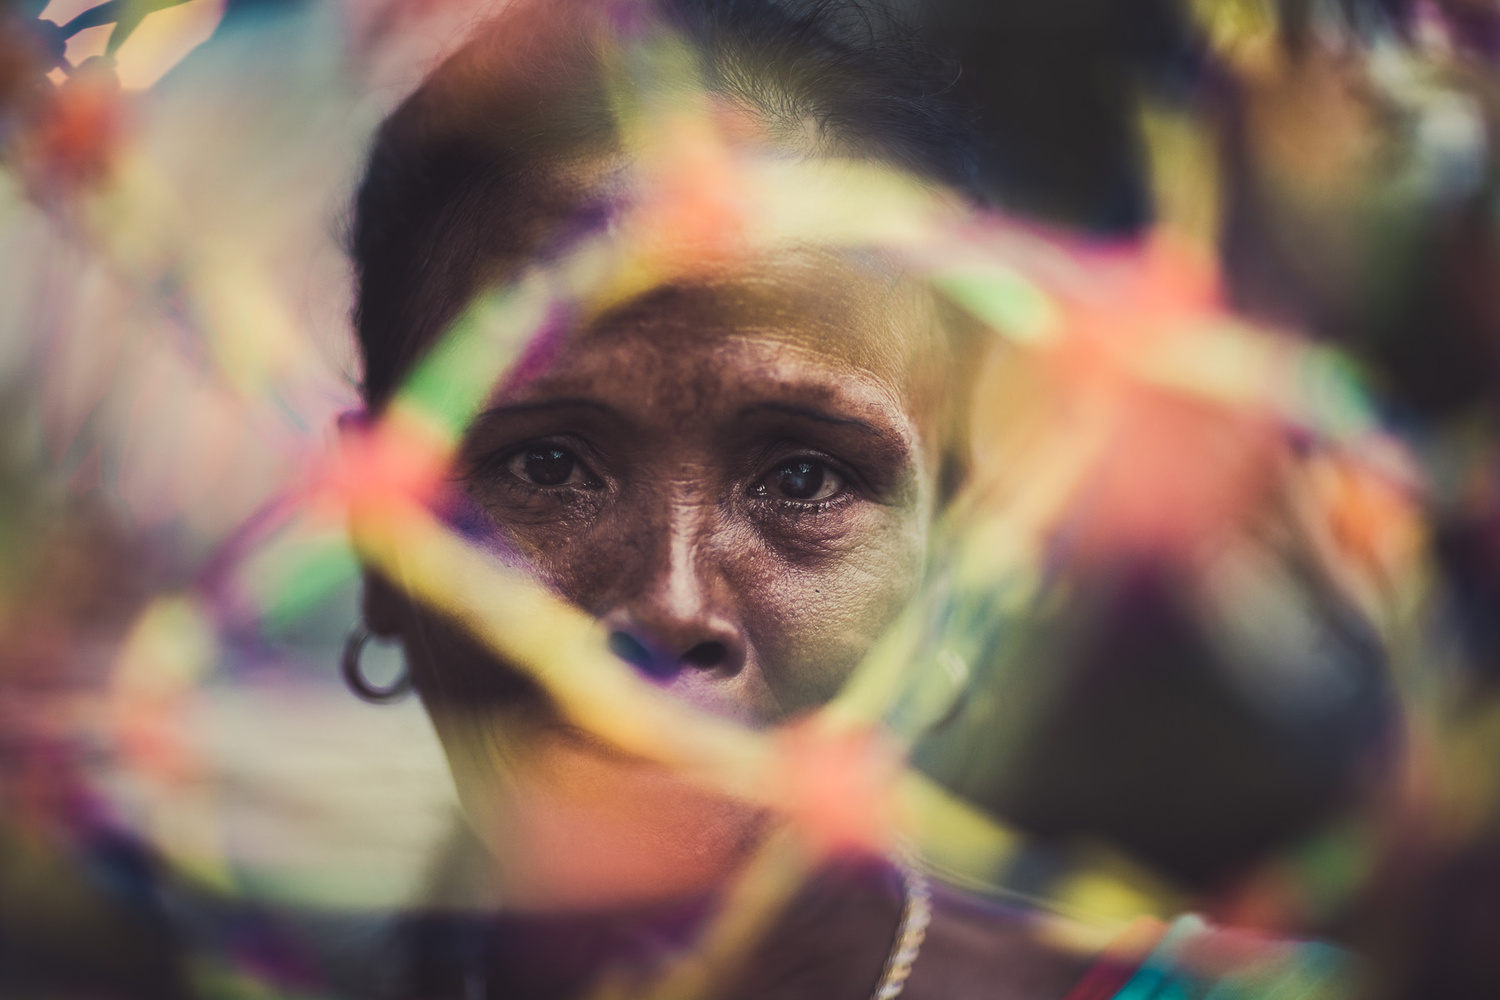 Street Portraits by Alfonso Calero